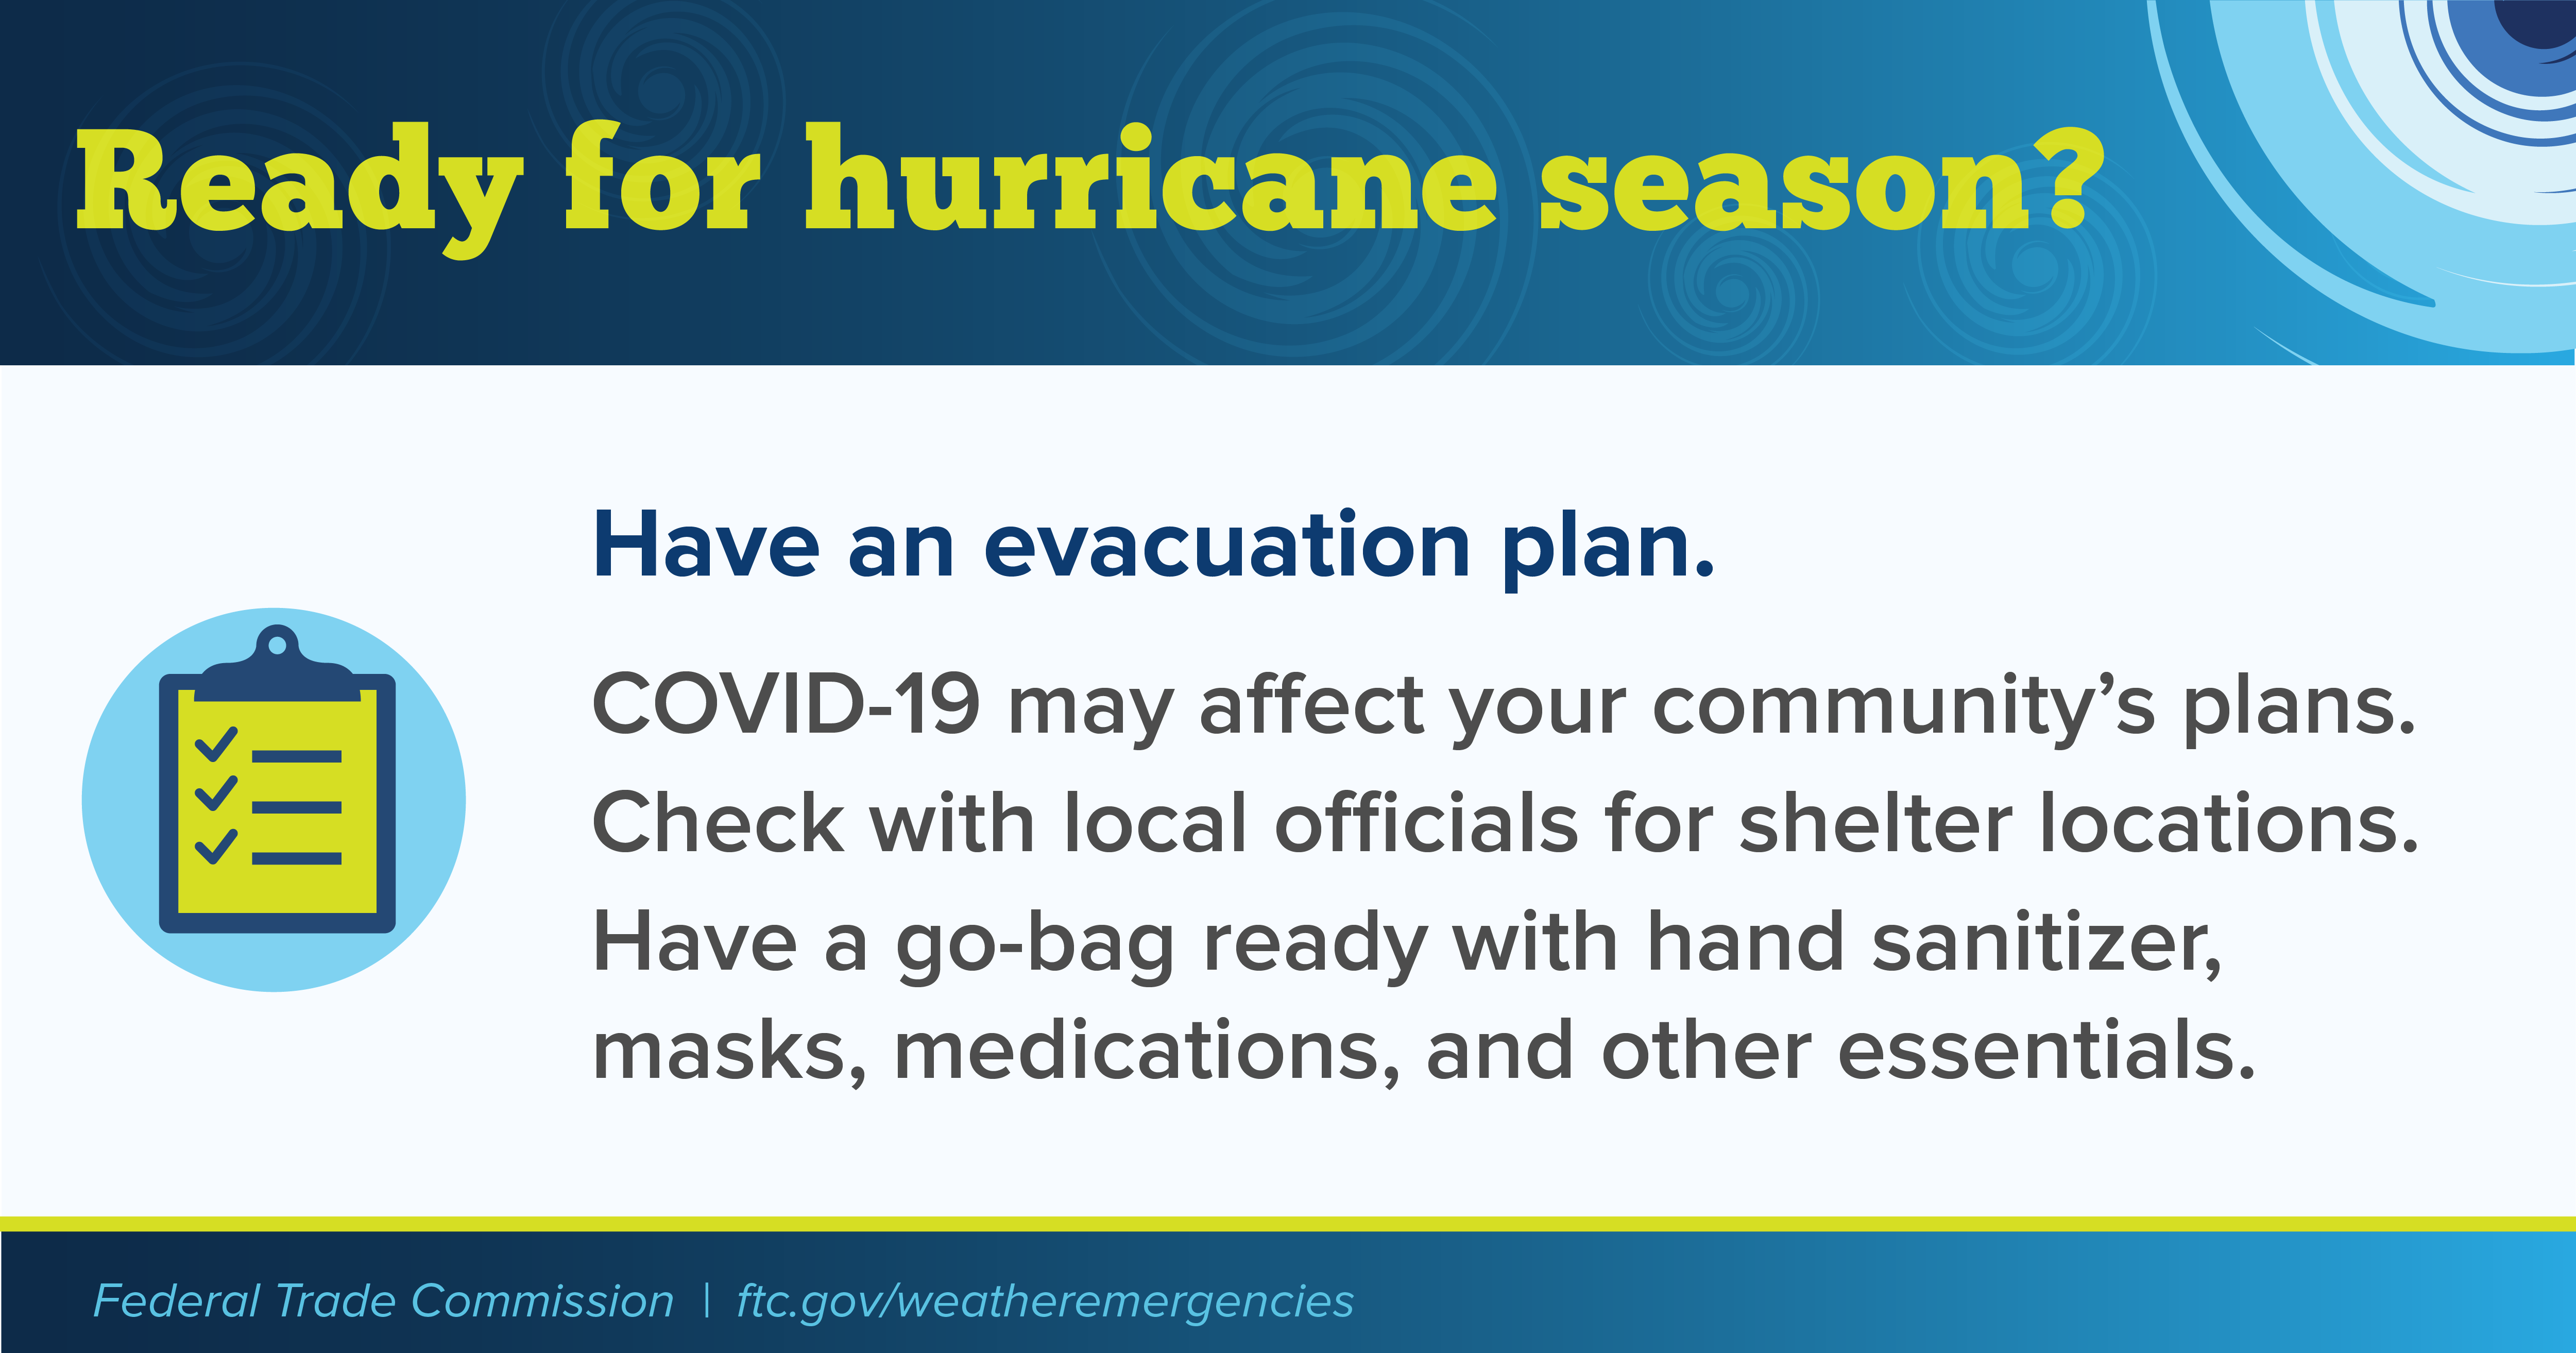 Have an evacuation plan